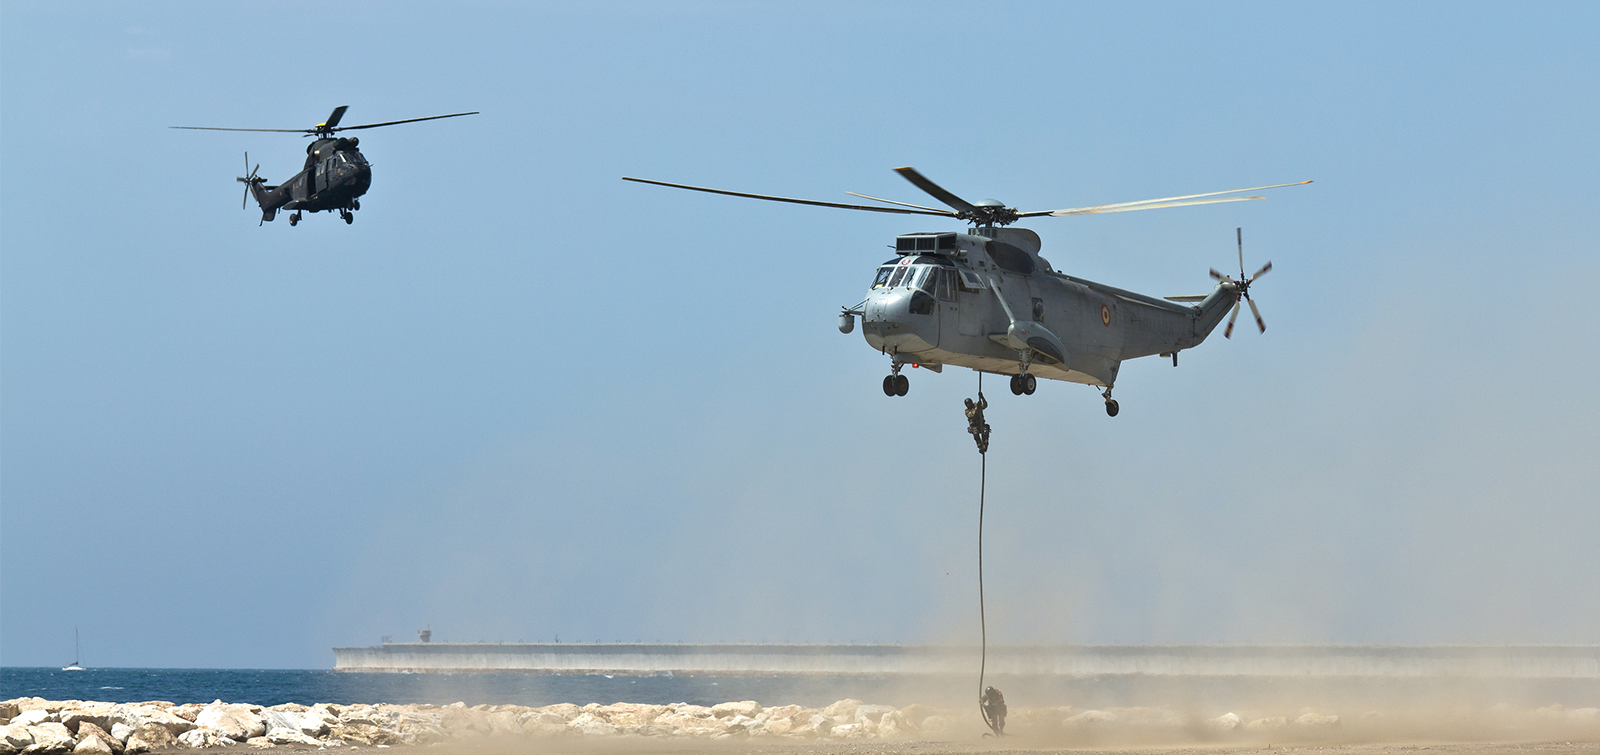 S_61T Helicopter